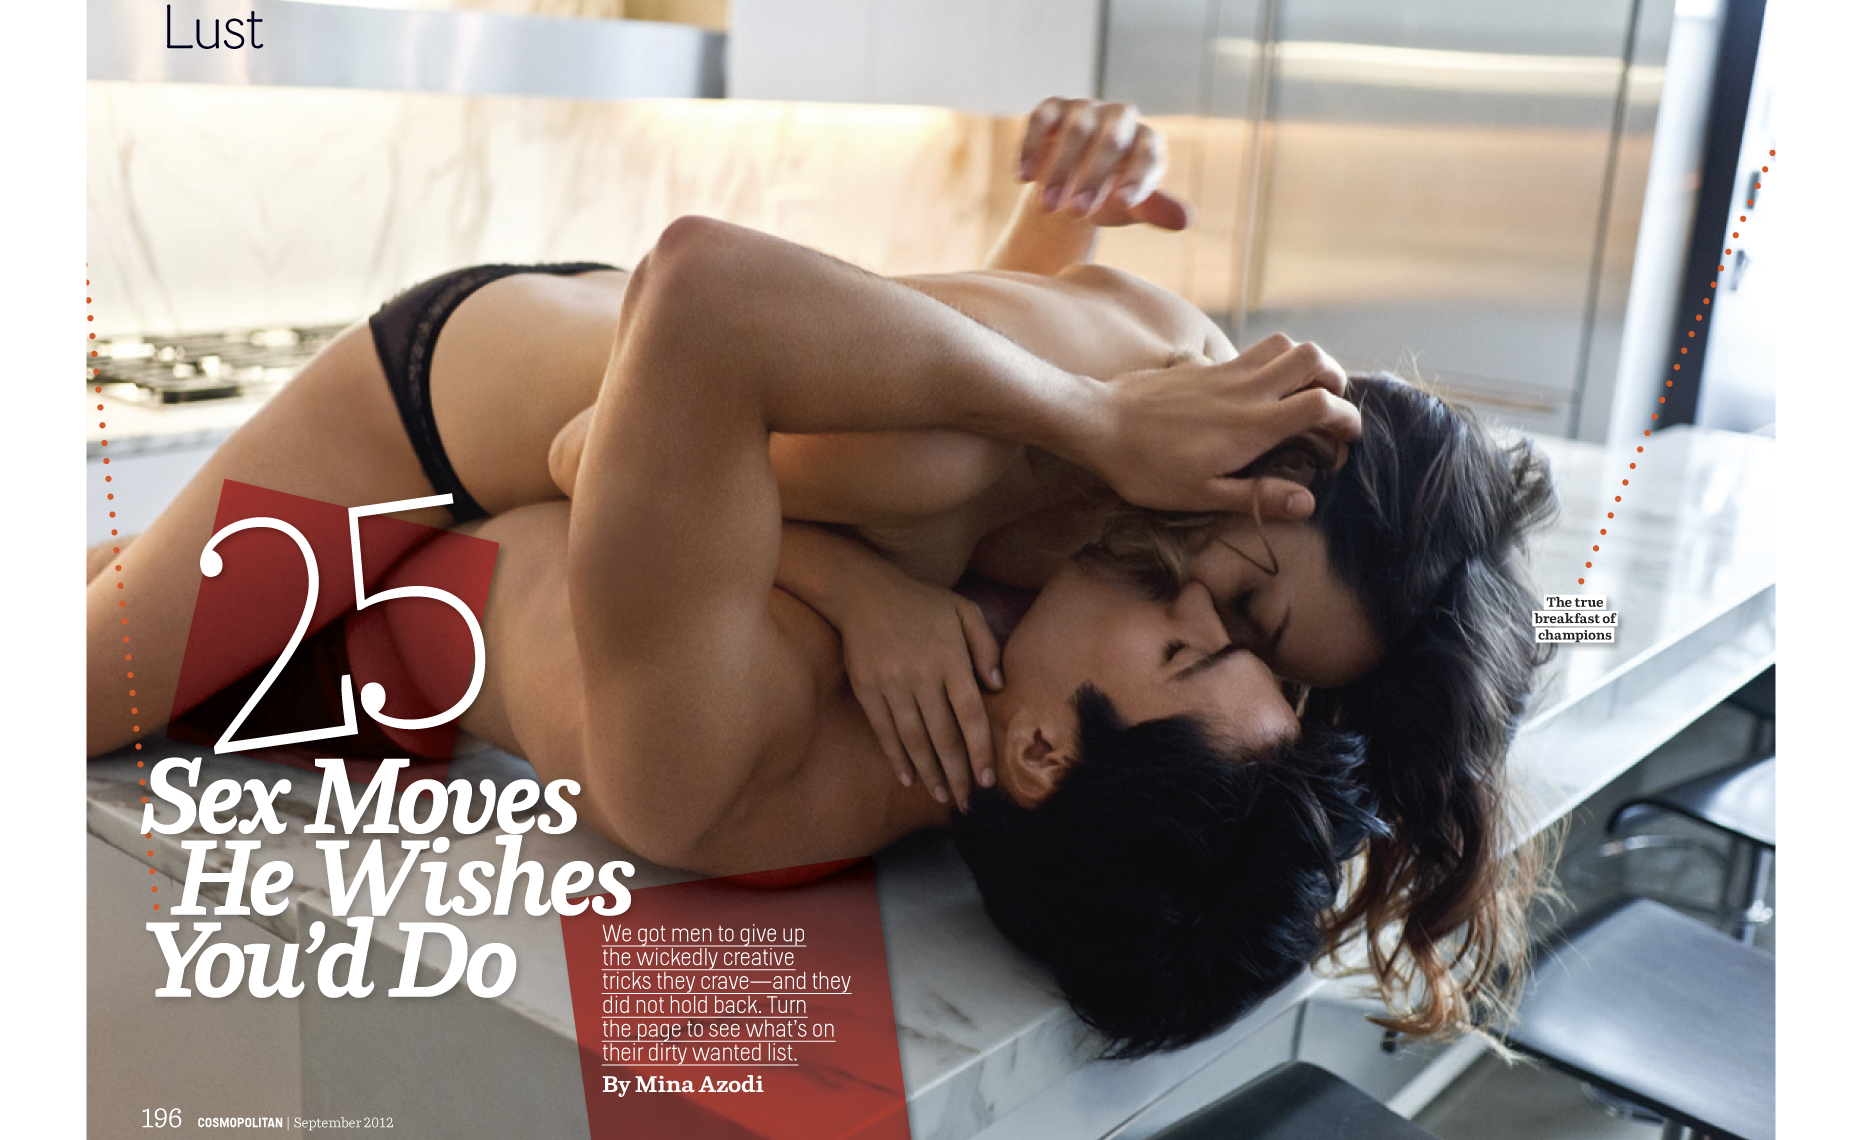 robert_whitman_cosmopolitan_25_Sex_moves_he_wishes_youd_do